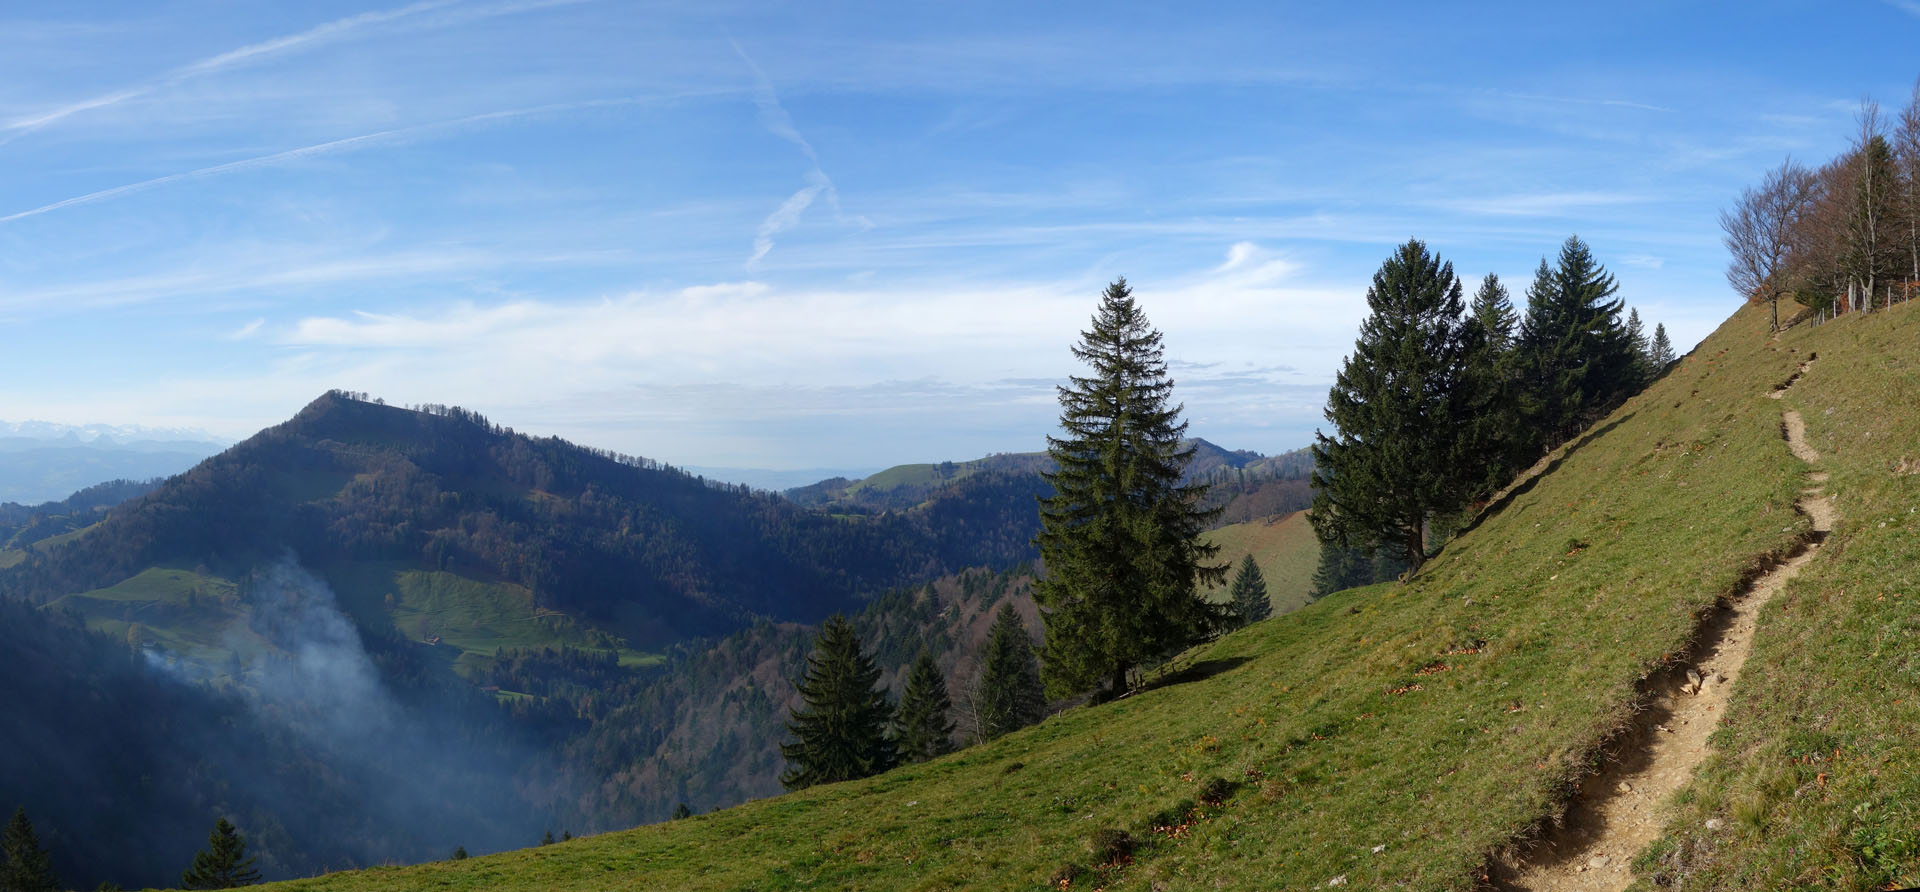 Wanderweg am Hang